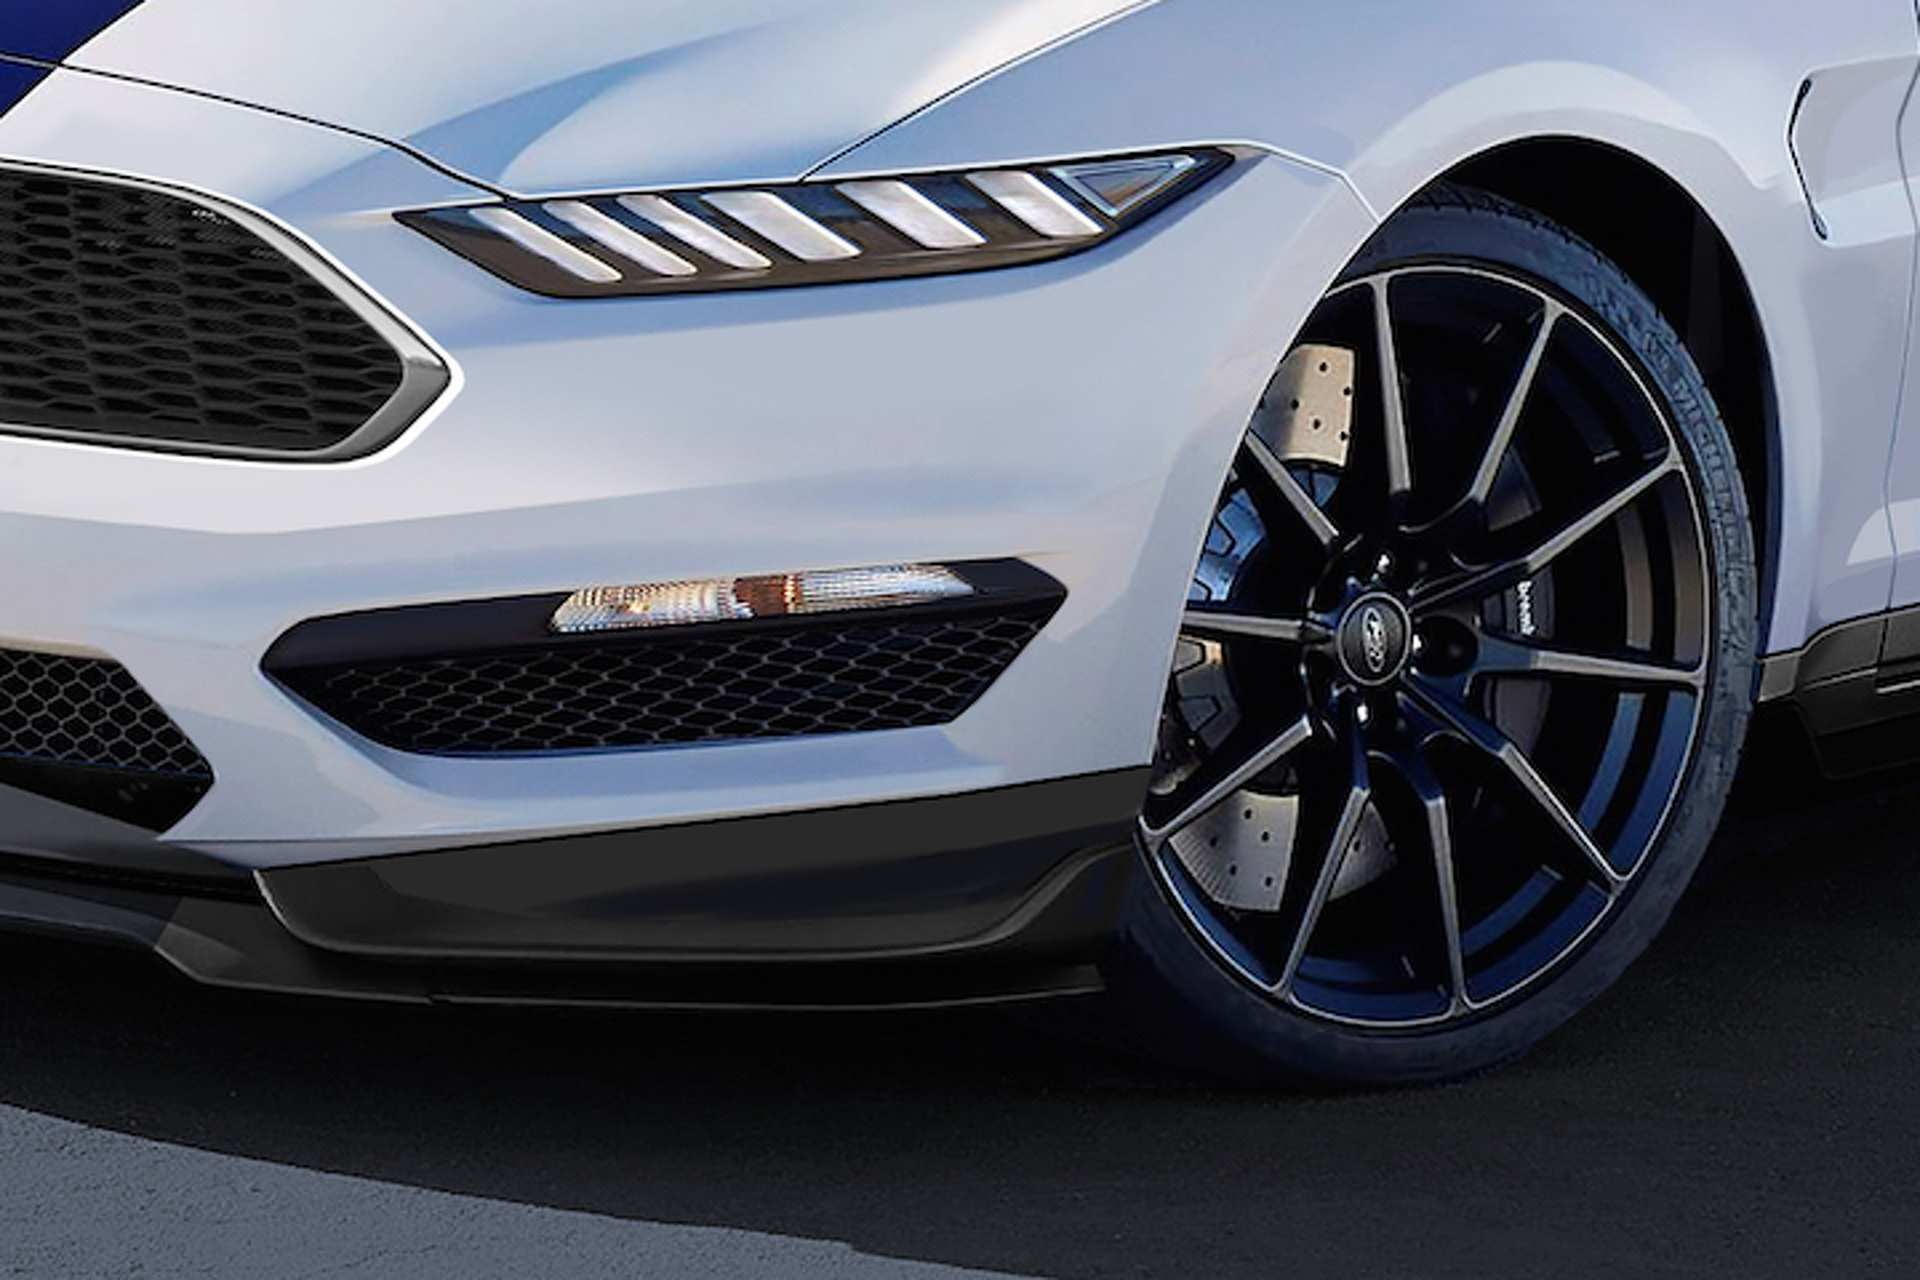 78 Great 2020 Ford Mustang Gt350 Specs by 2020 Ford Mustang Gt350